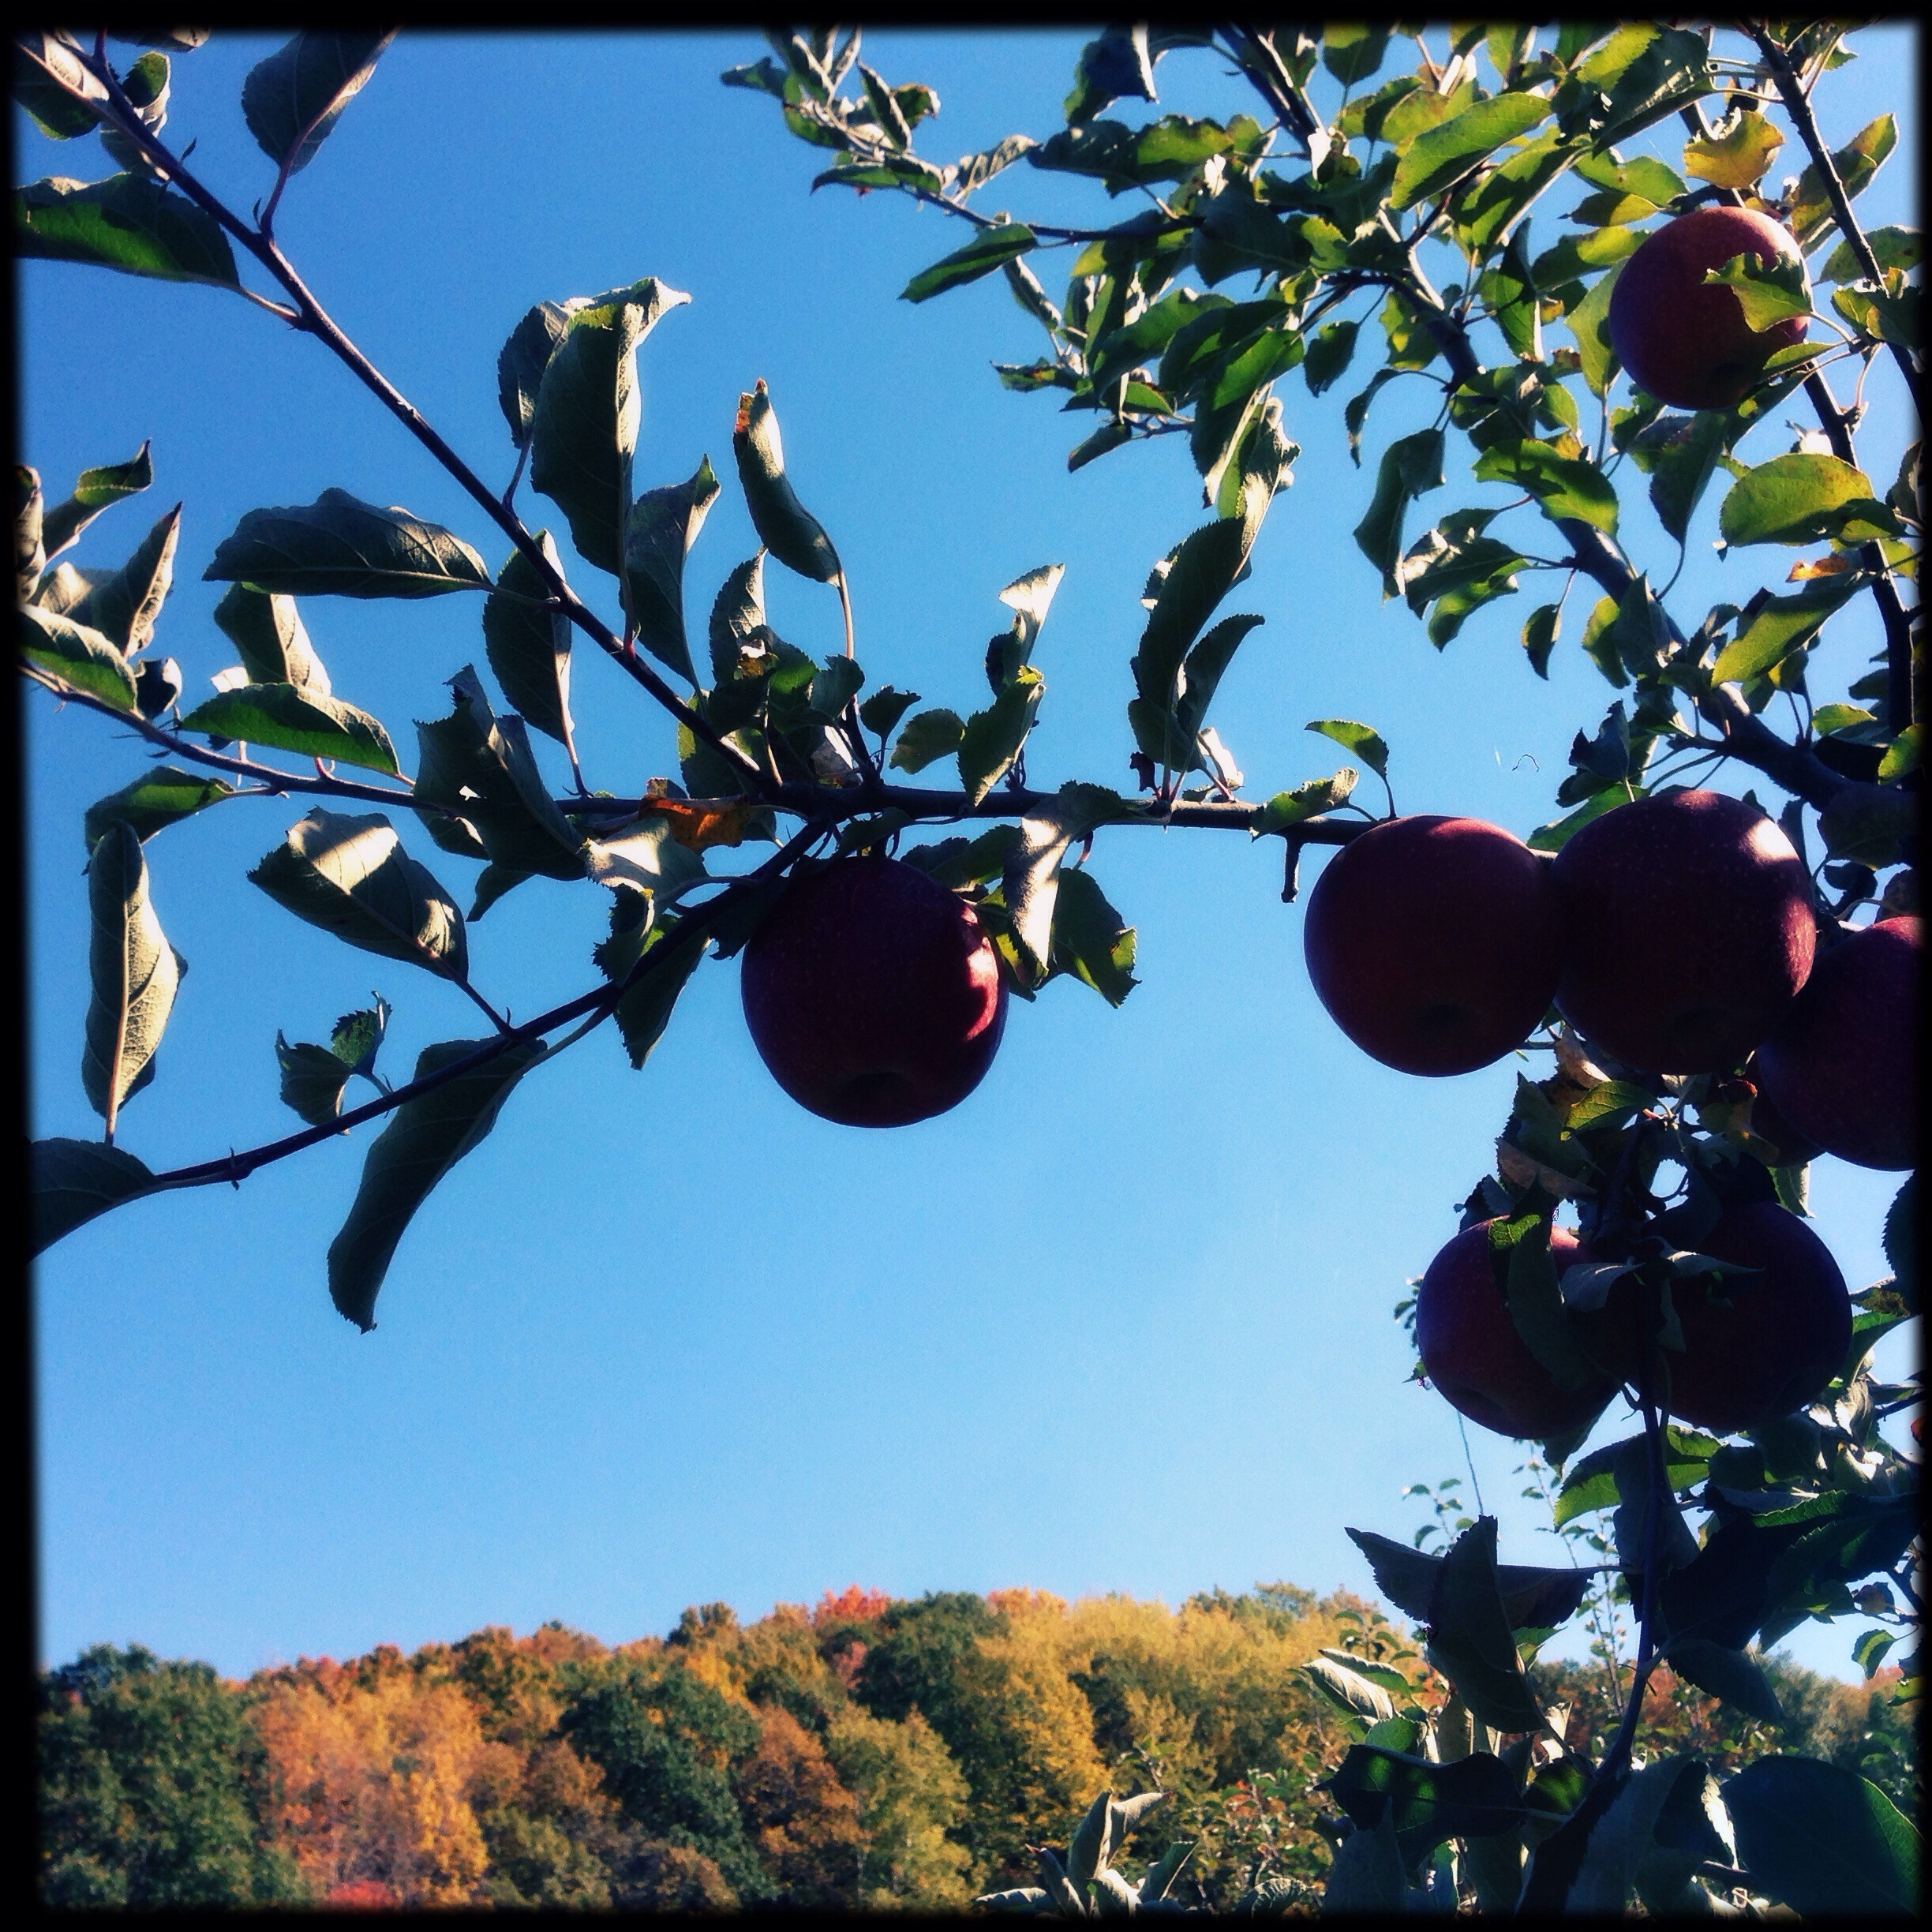 Hick's orchard